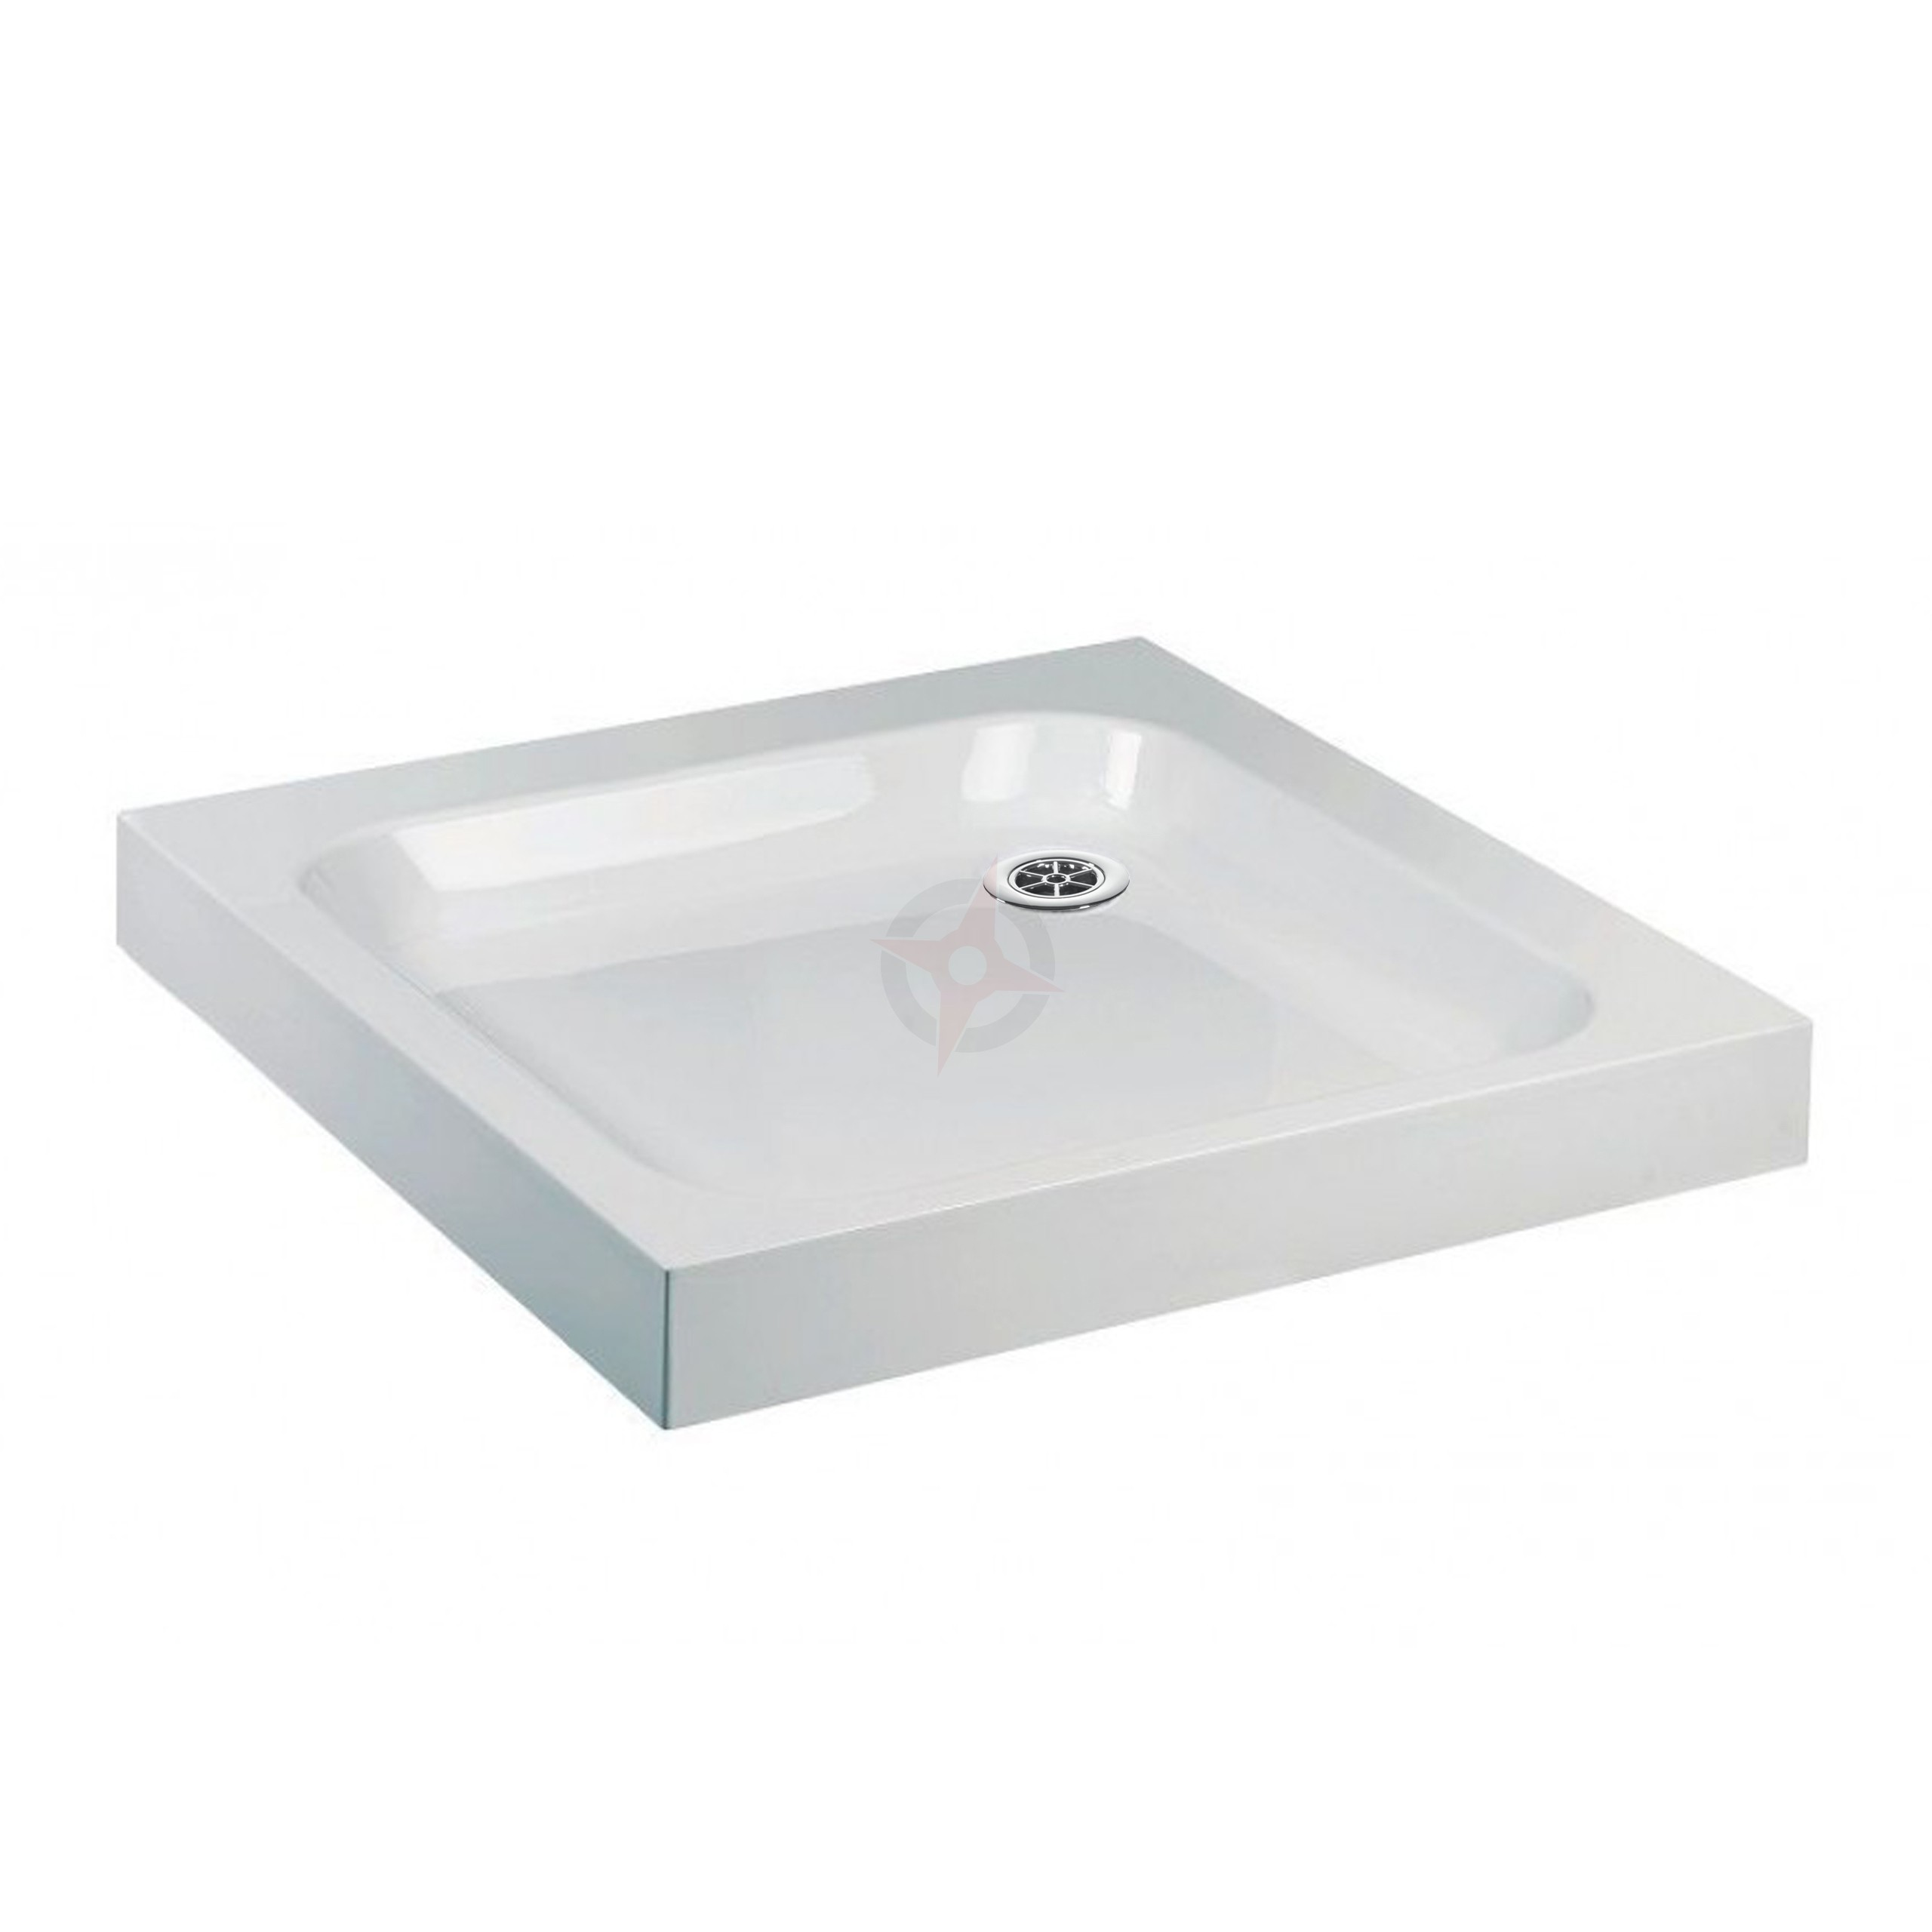 JT Ultracast 760mm x 760mm Stone Resin Shower Tray